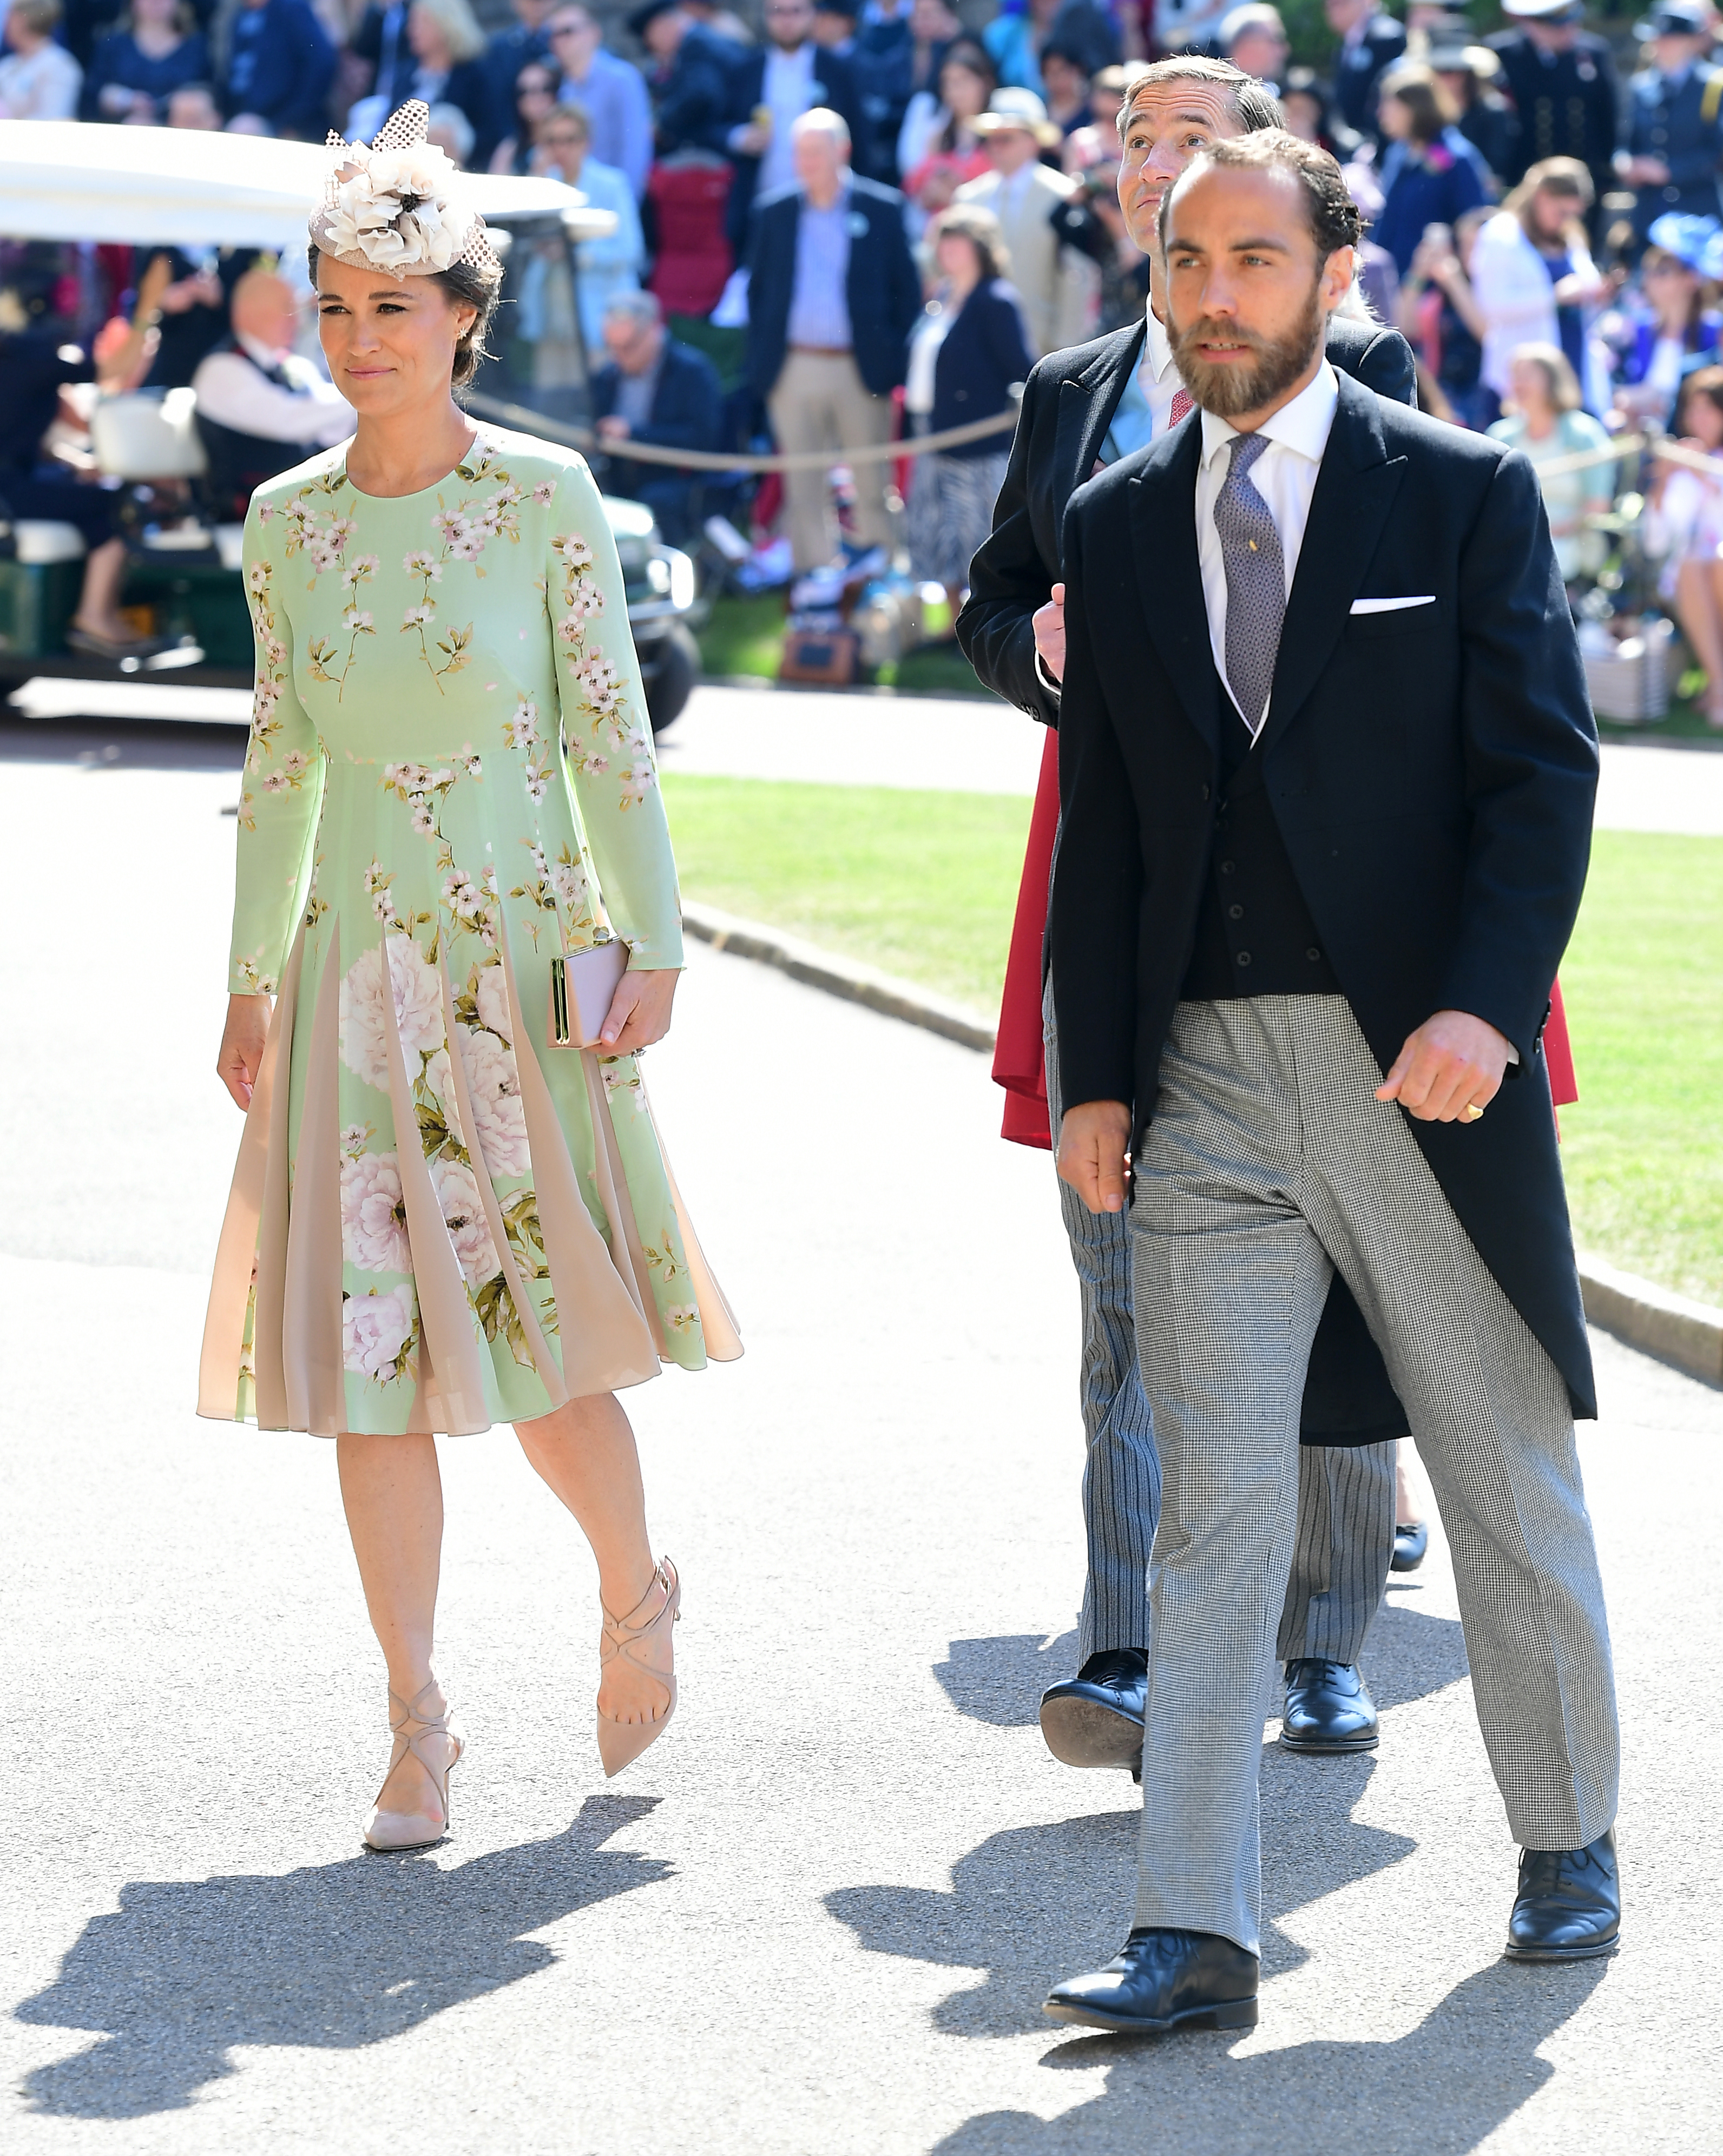 Wedding royal what the guests wore forecast dress for winter in 2019